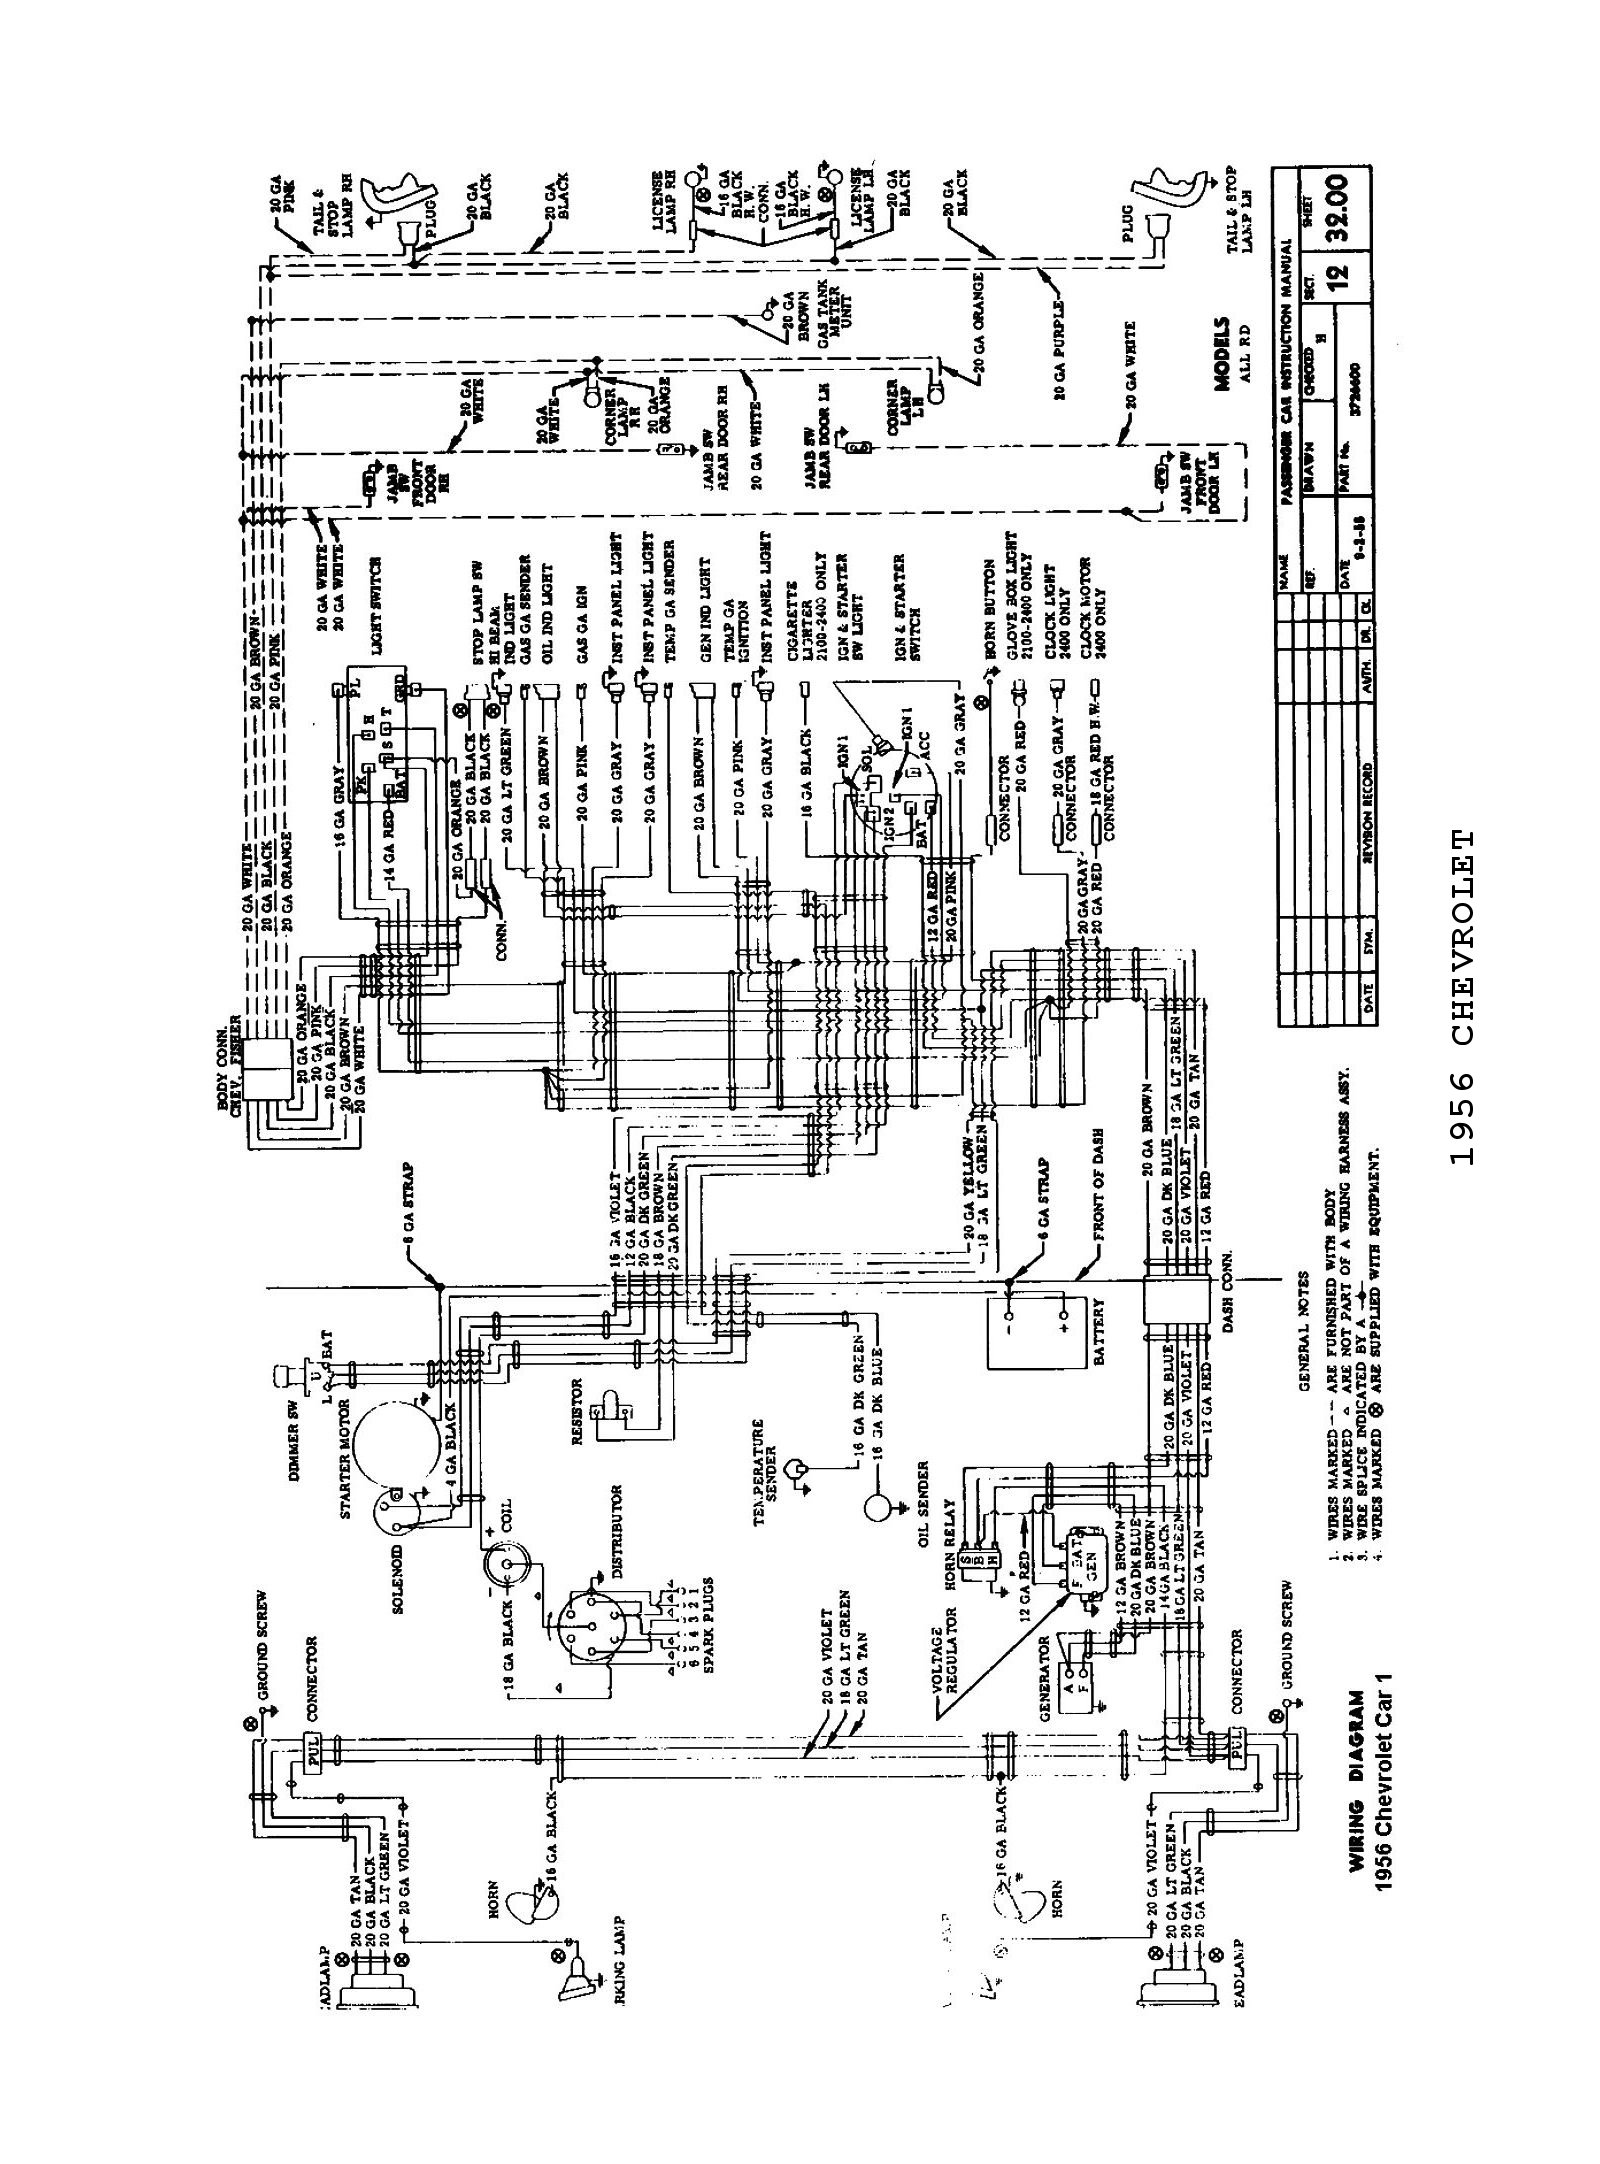 56 Chevy Belair Wiring Diagram